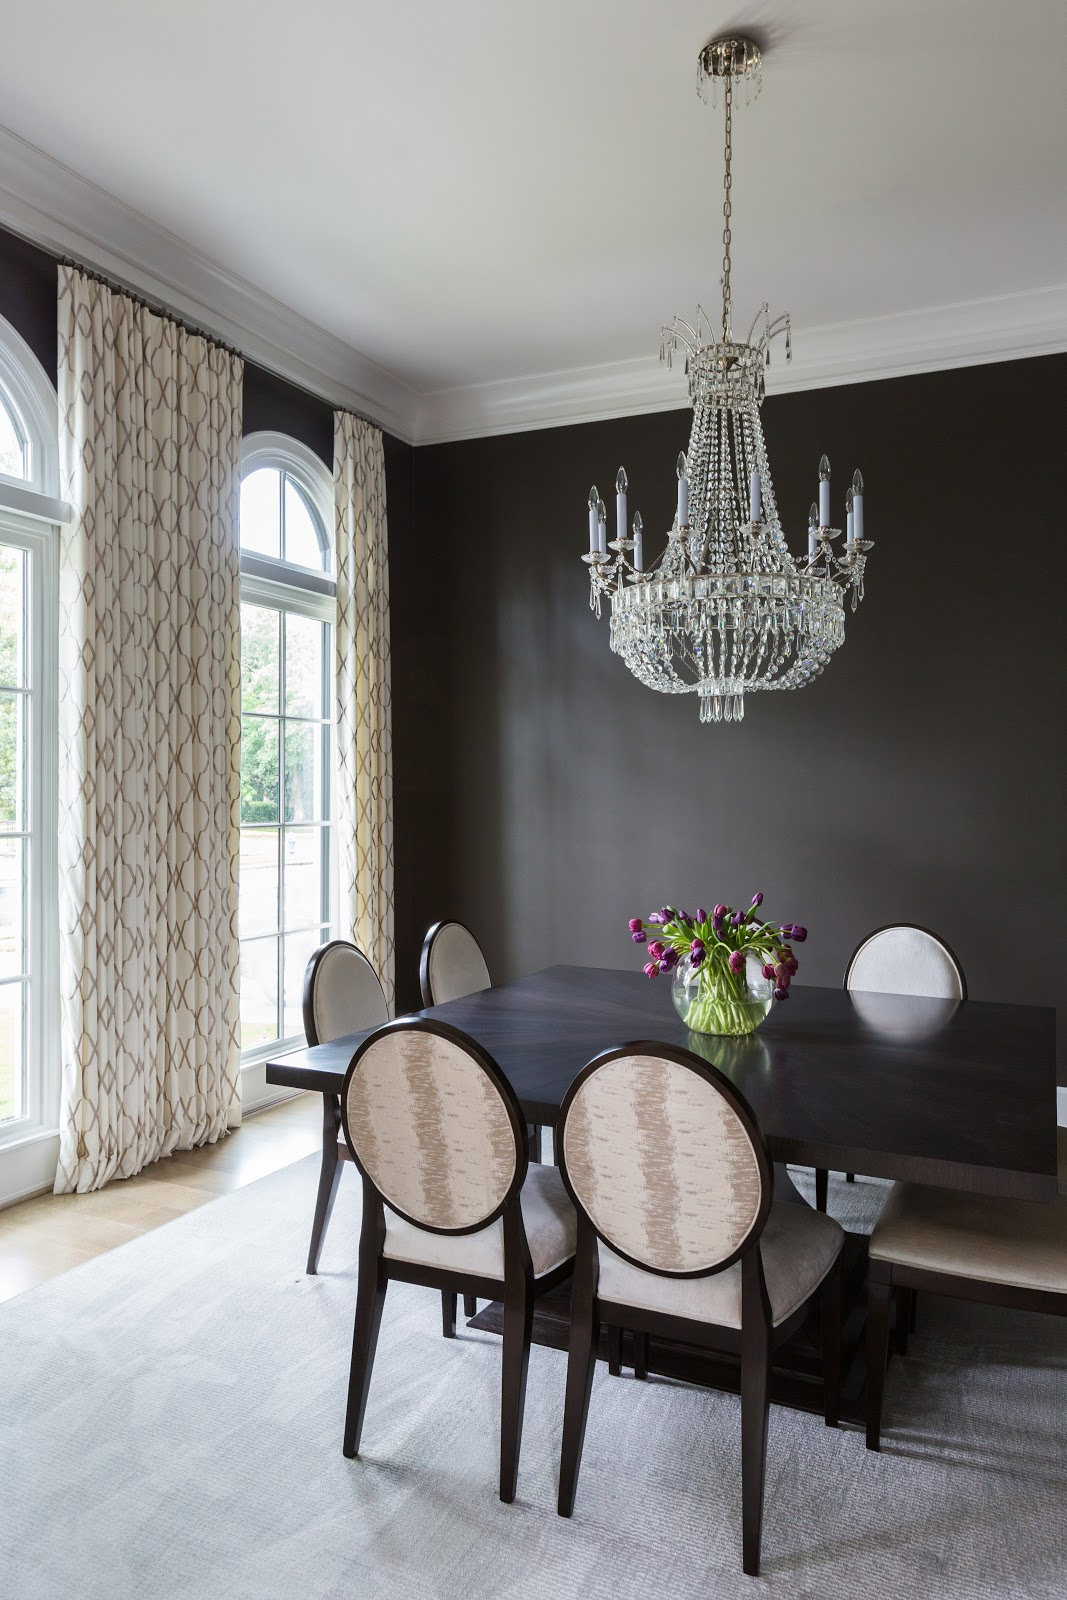 Traditional antique crystal chandelier in dark dining room - Dbh-biz.info Interior Design